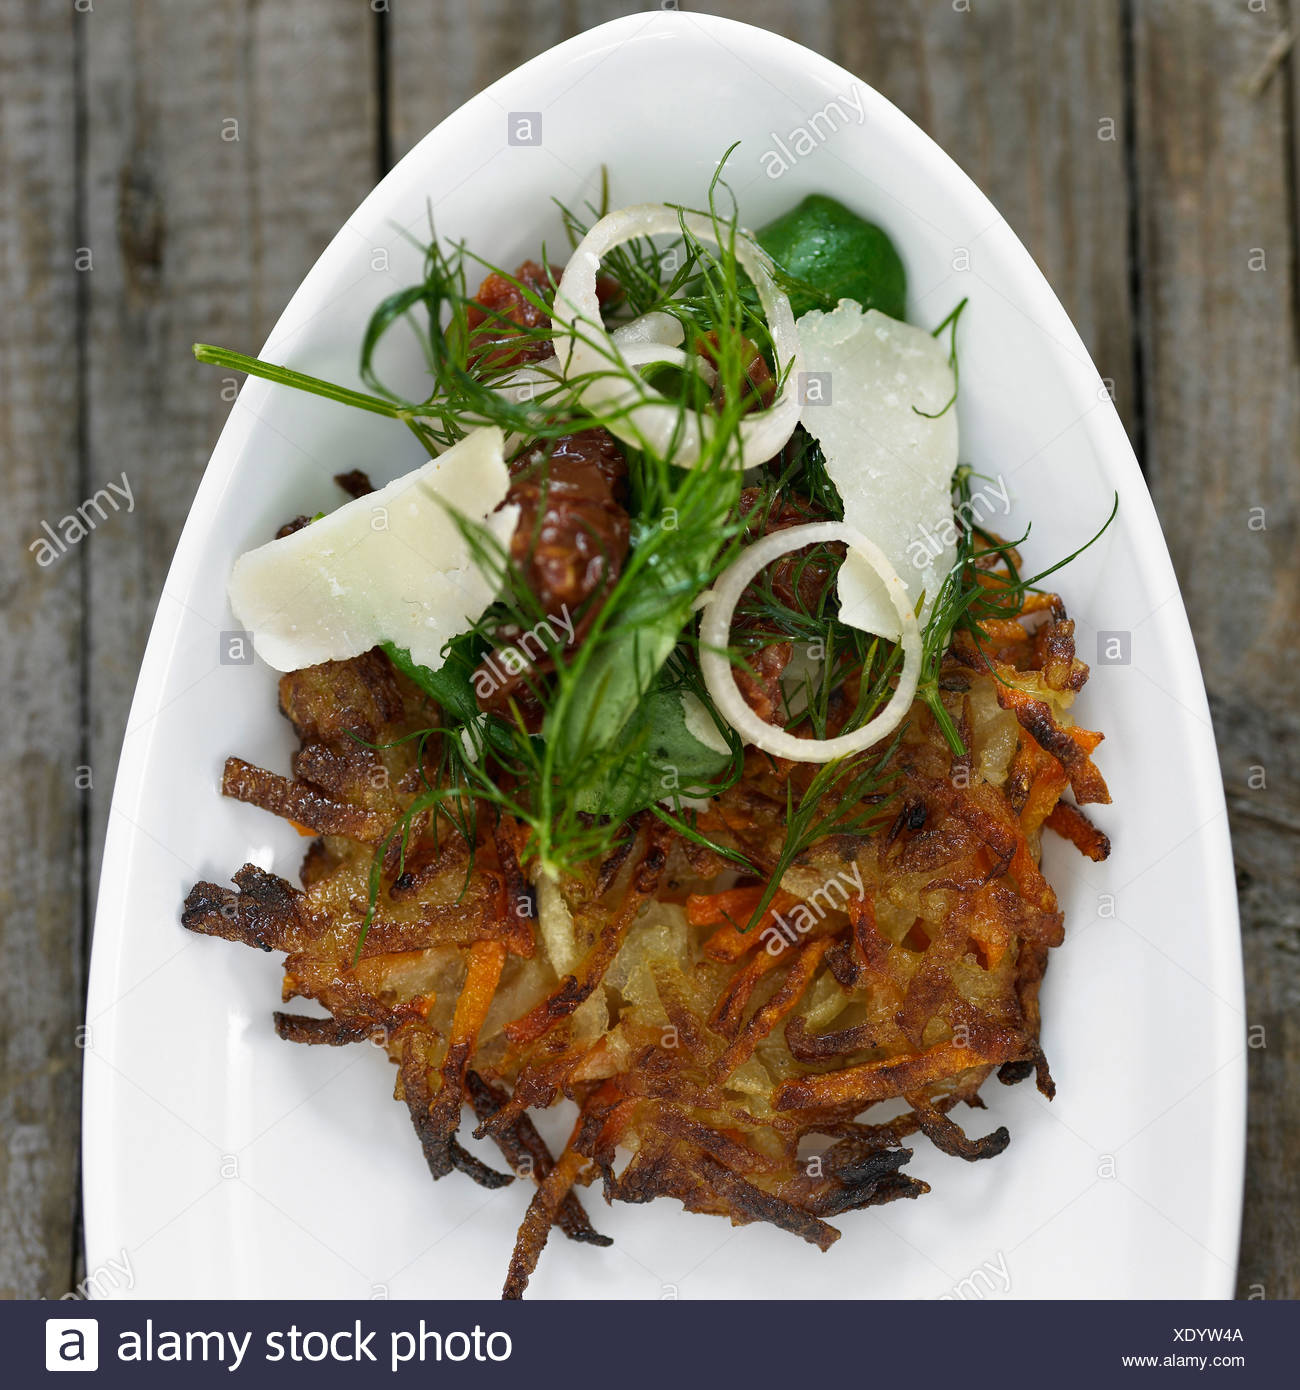 Plate of potato pancake with toppings Stock Photo